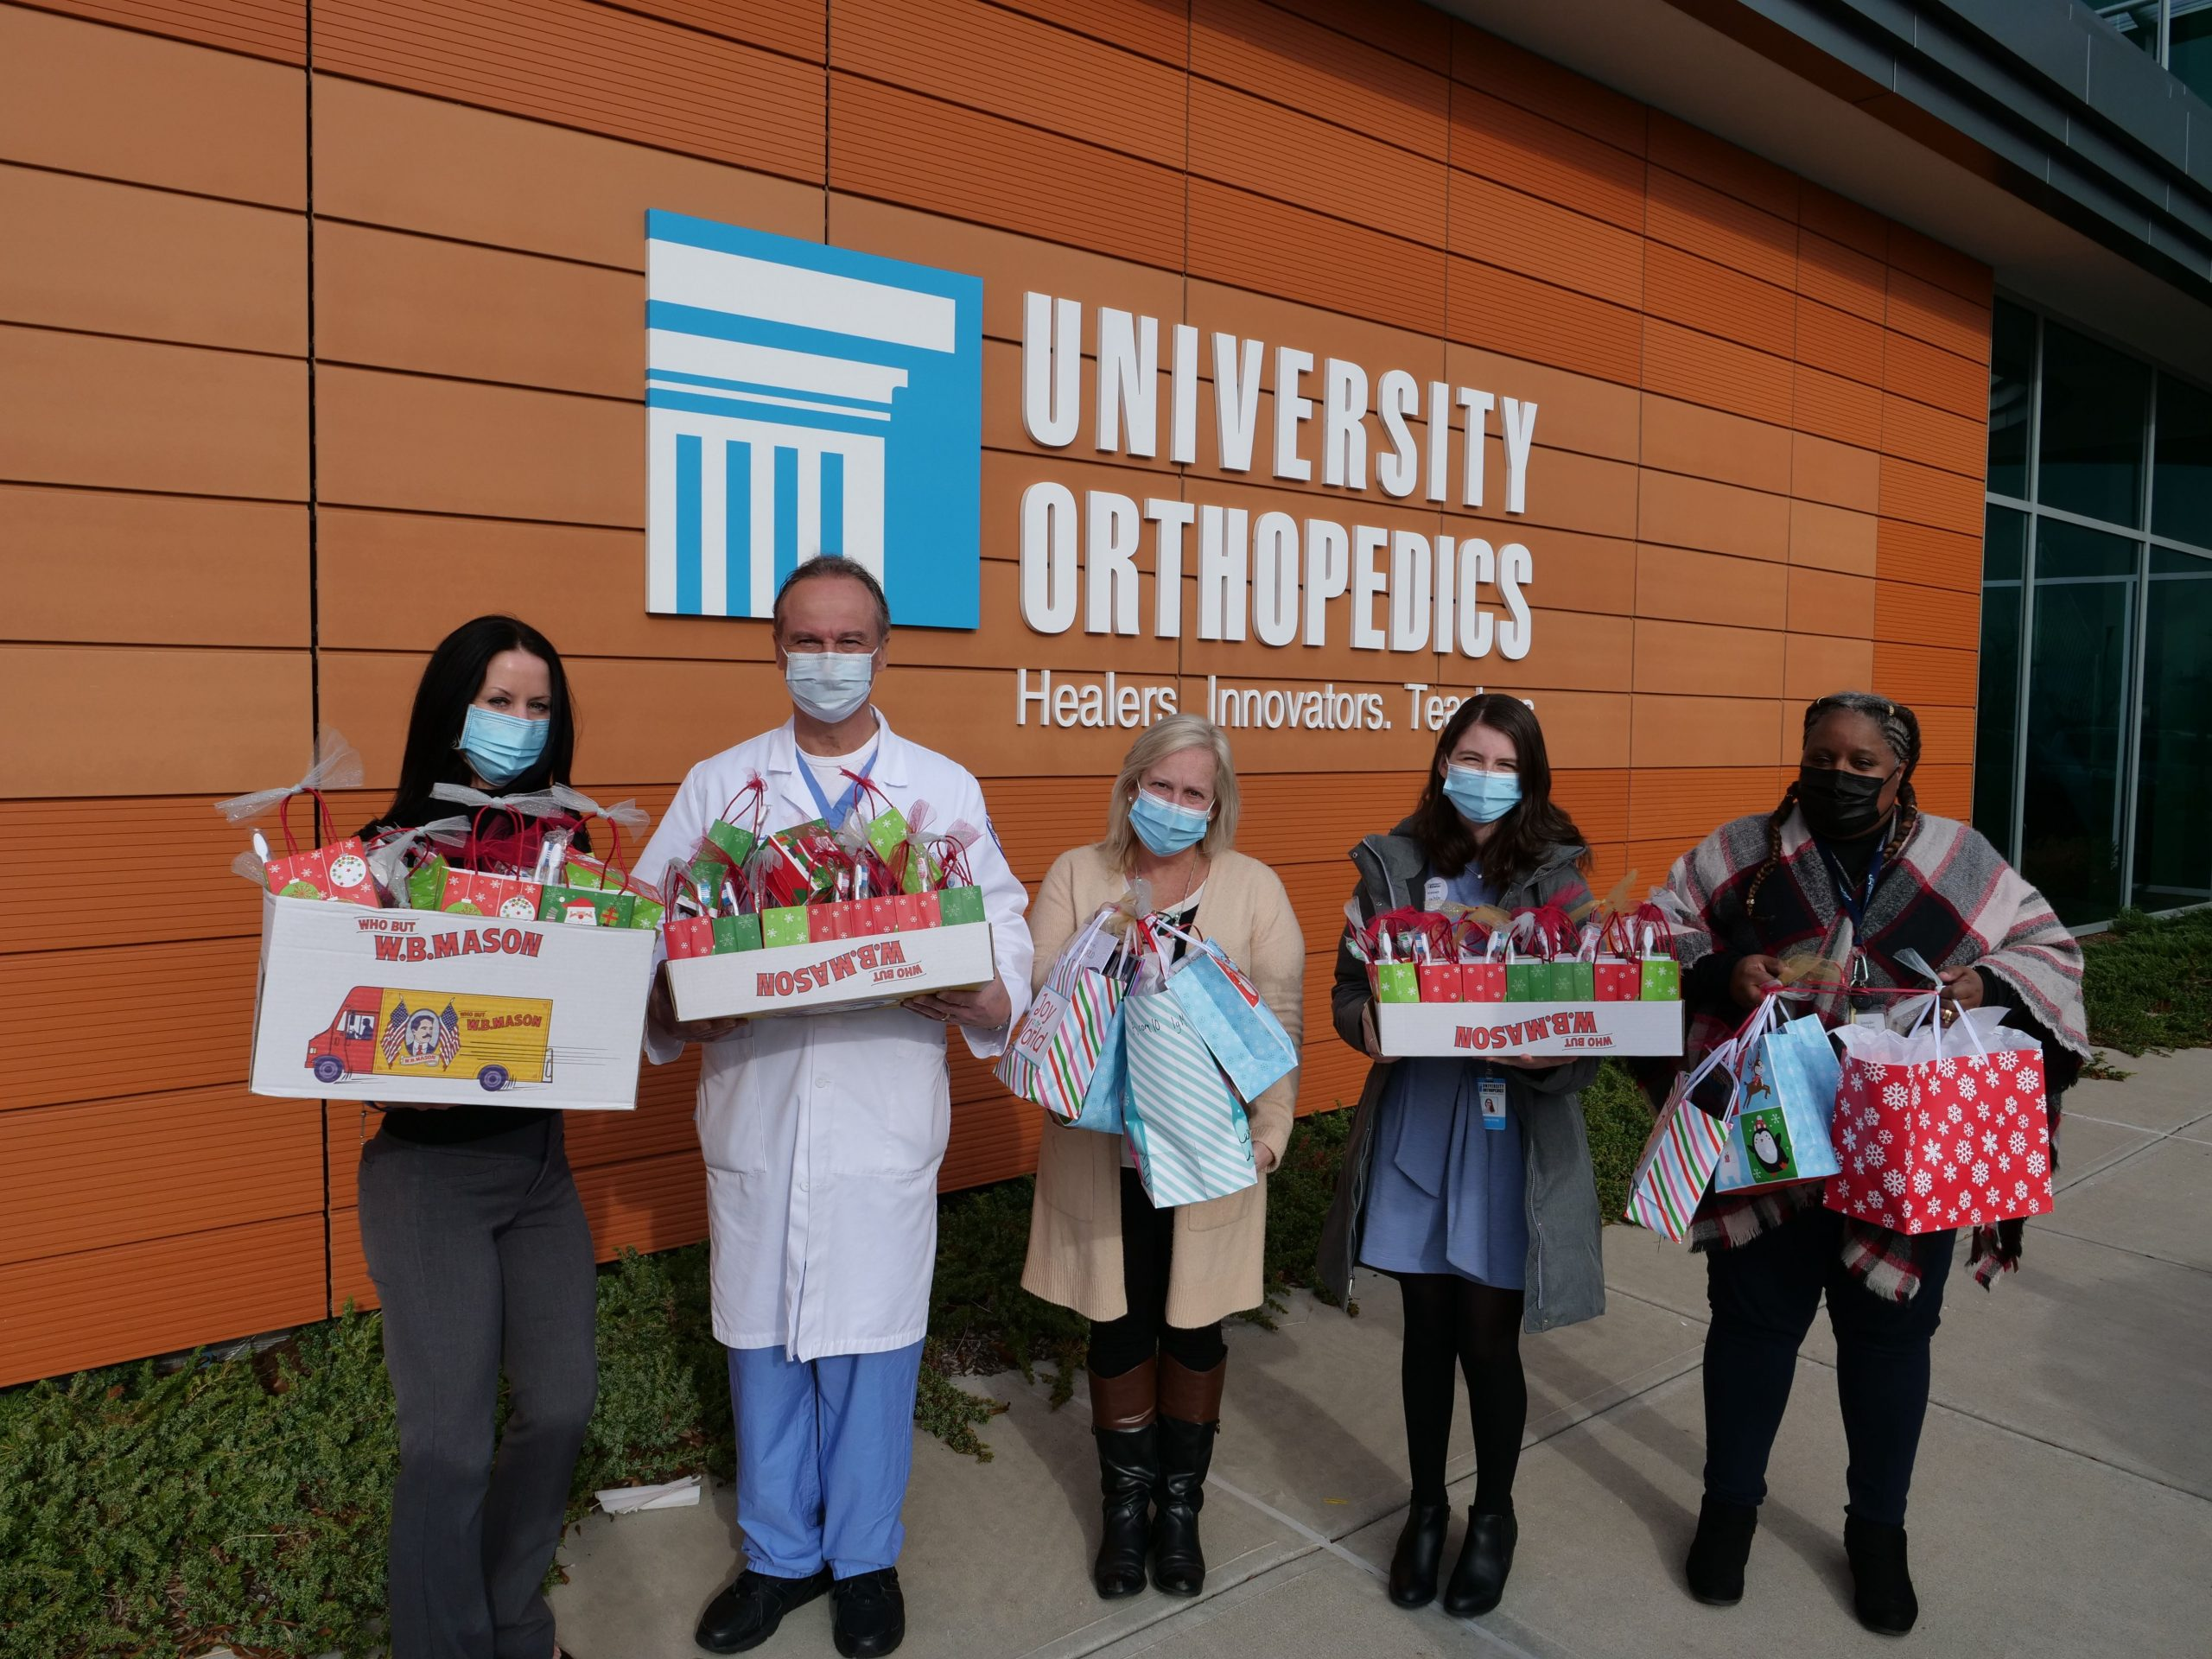 UOI's 'Season of Giving' continues with warm donation to Crossroads RI